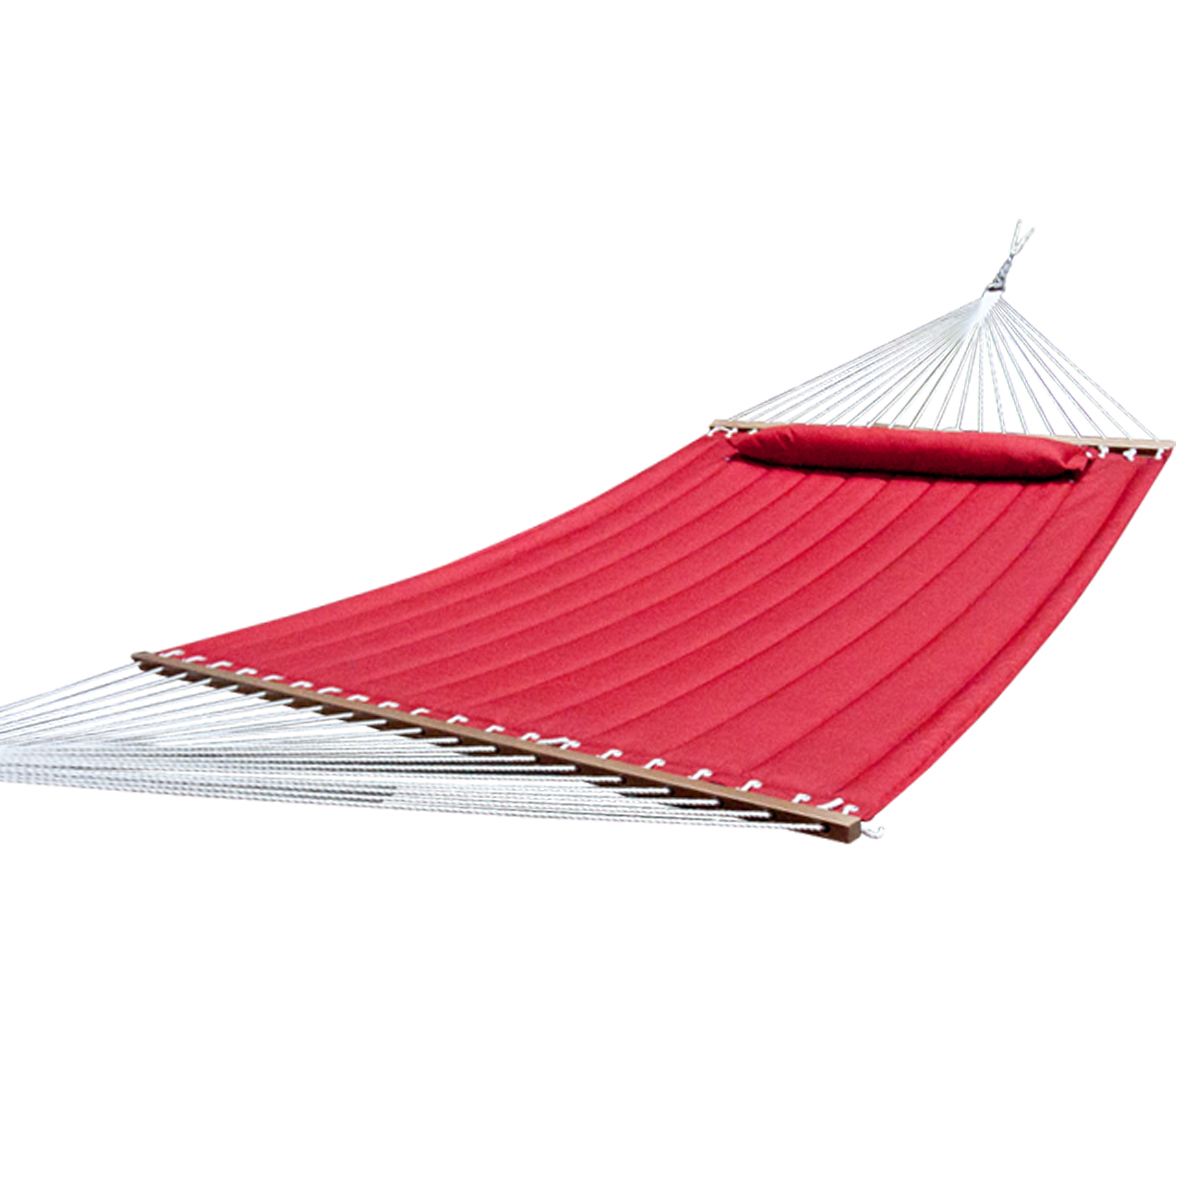 New Quilted Outdoor Hammock Cotton Sleeping Bed Camping ...